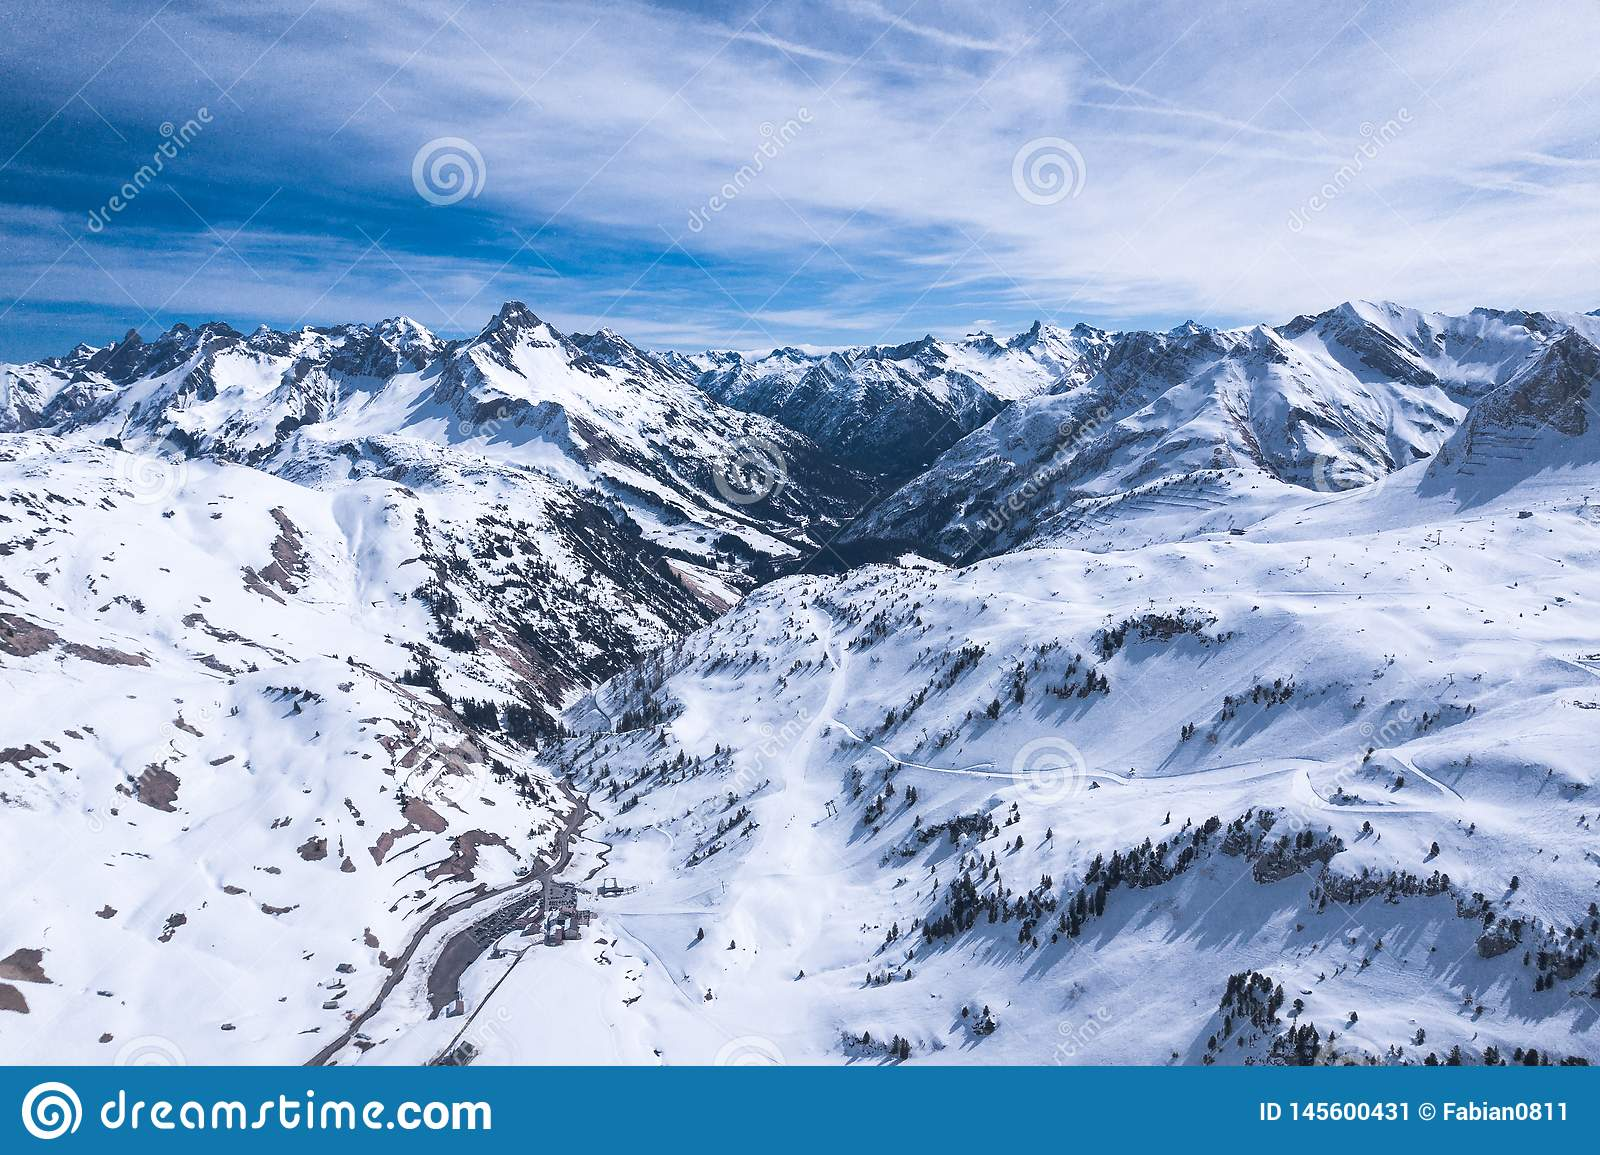 Winter landscape with blue sky in austria by drone